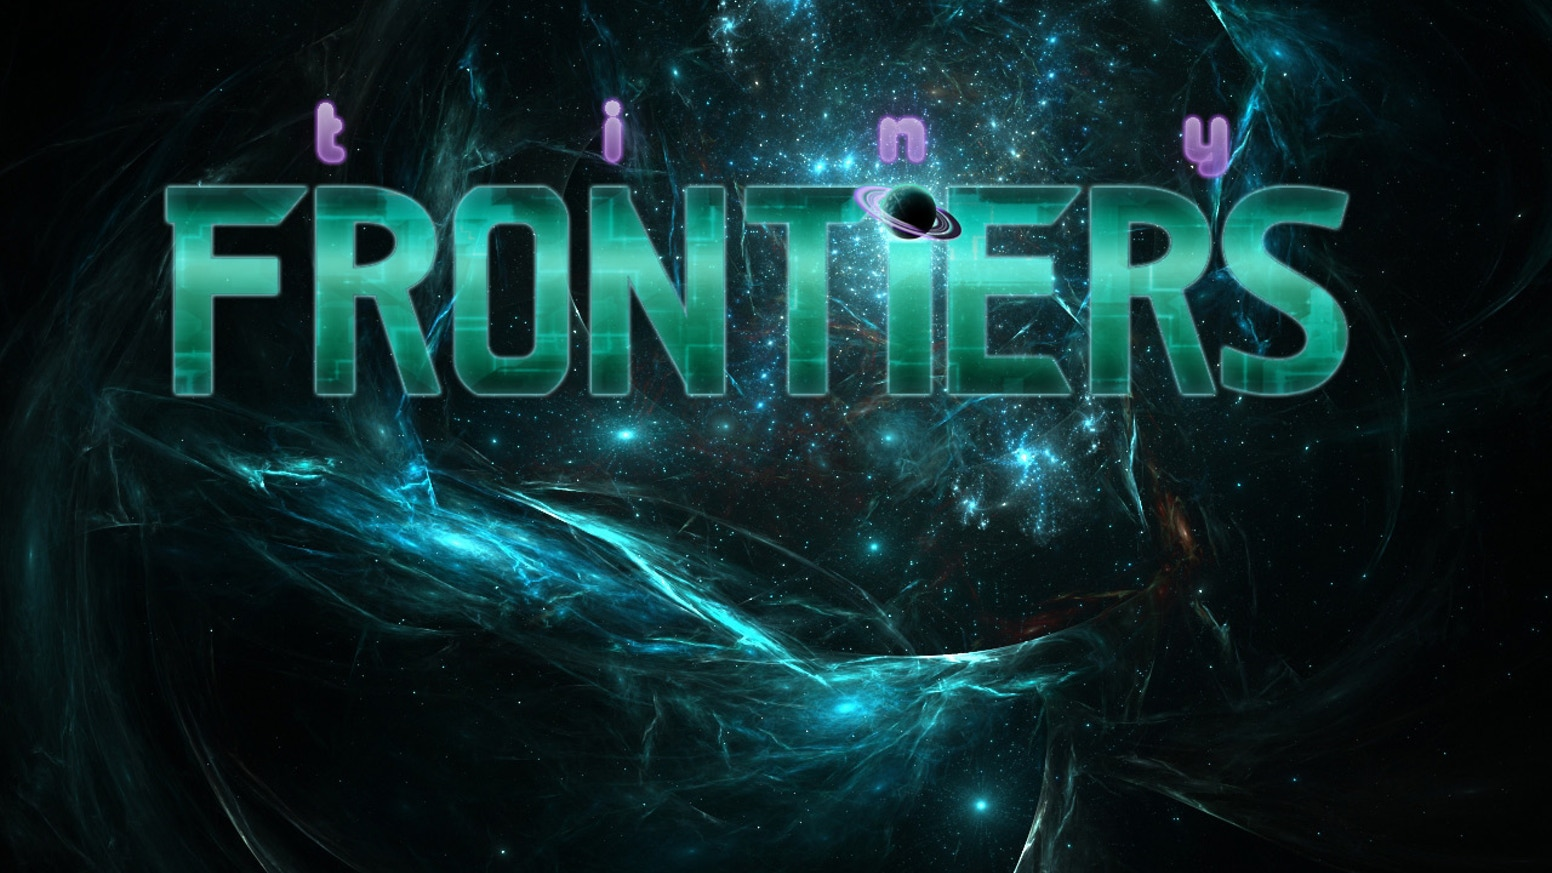 Tiny Frontiers Minimalist Science Fiction Roleplaying By Gallant